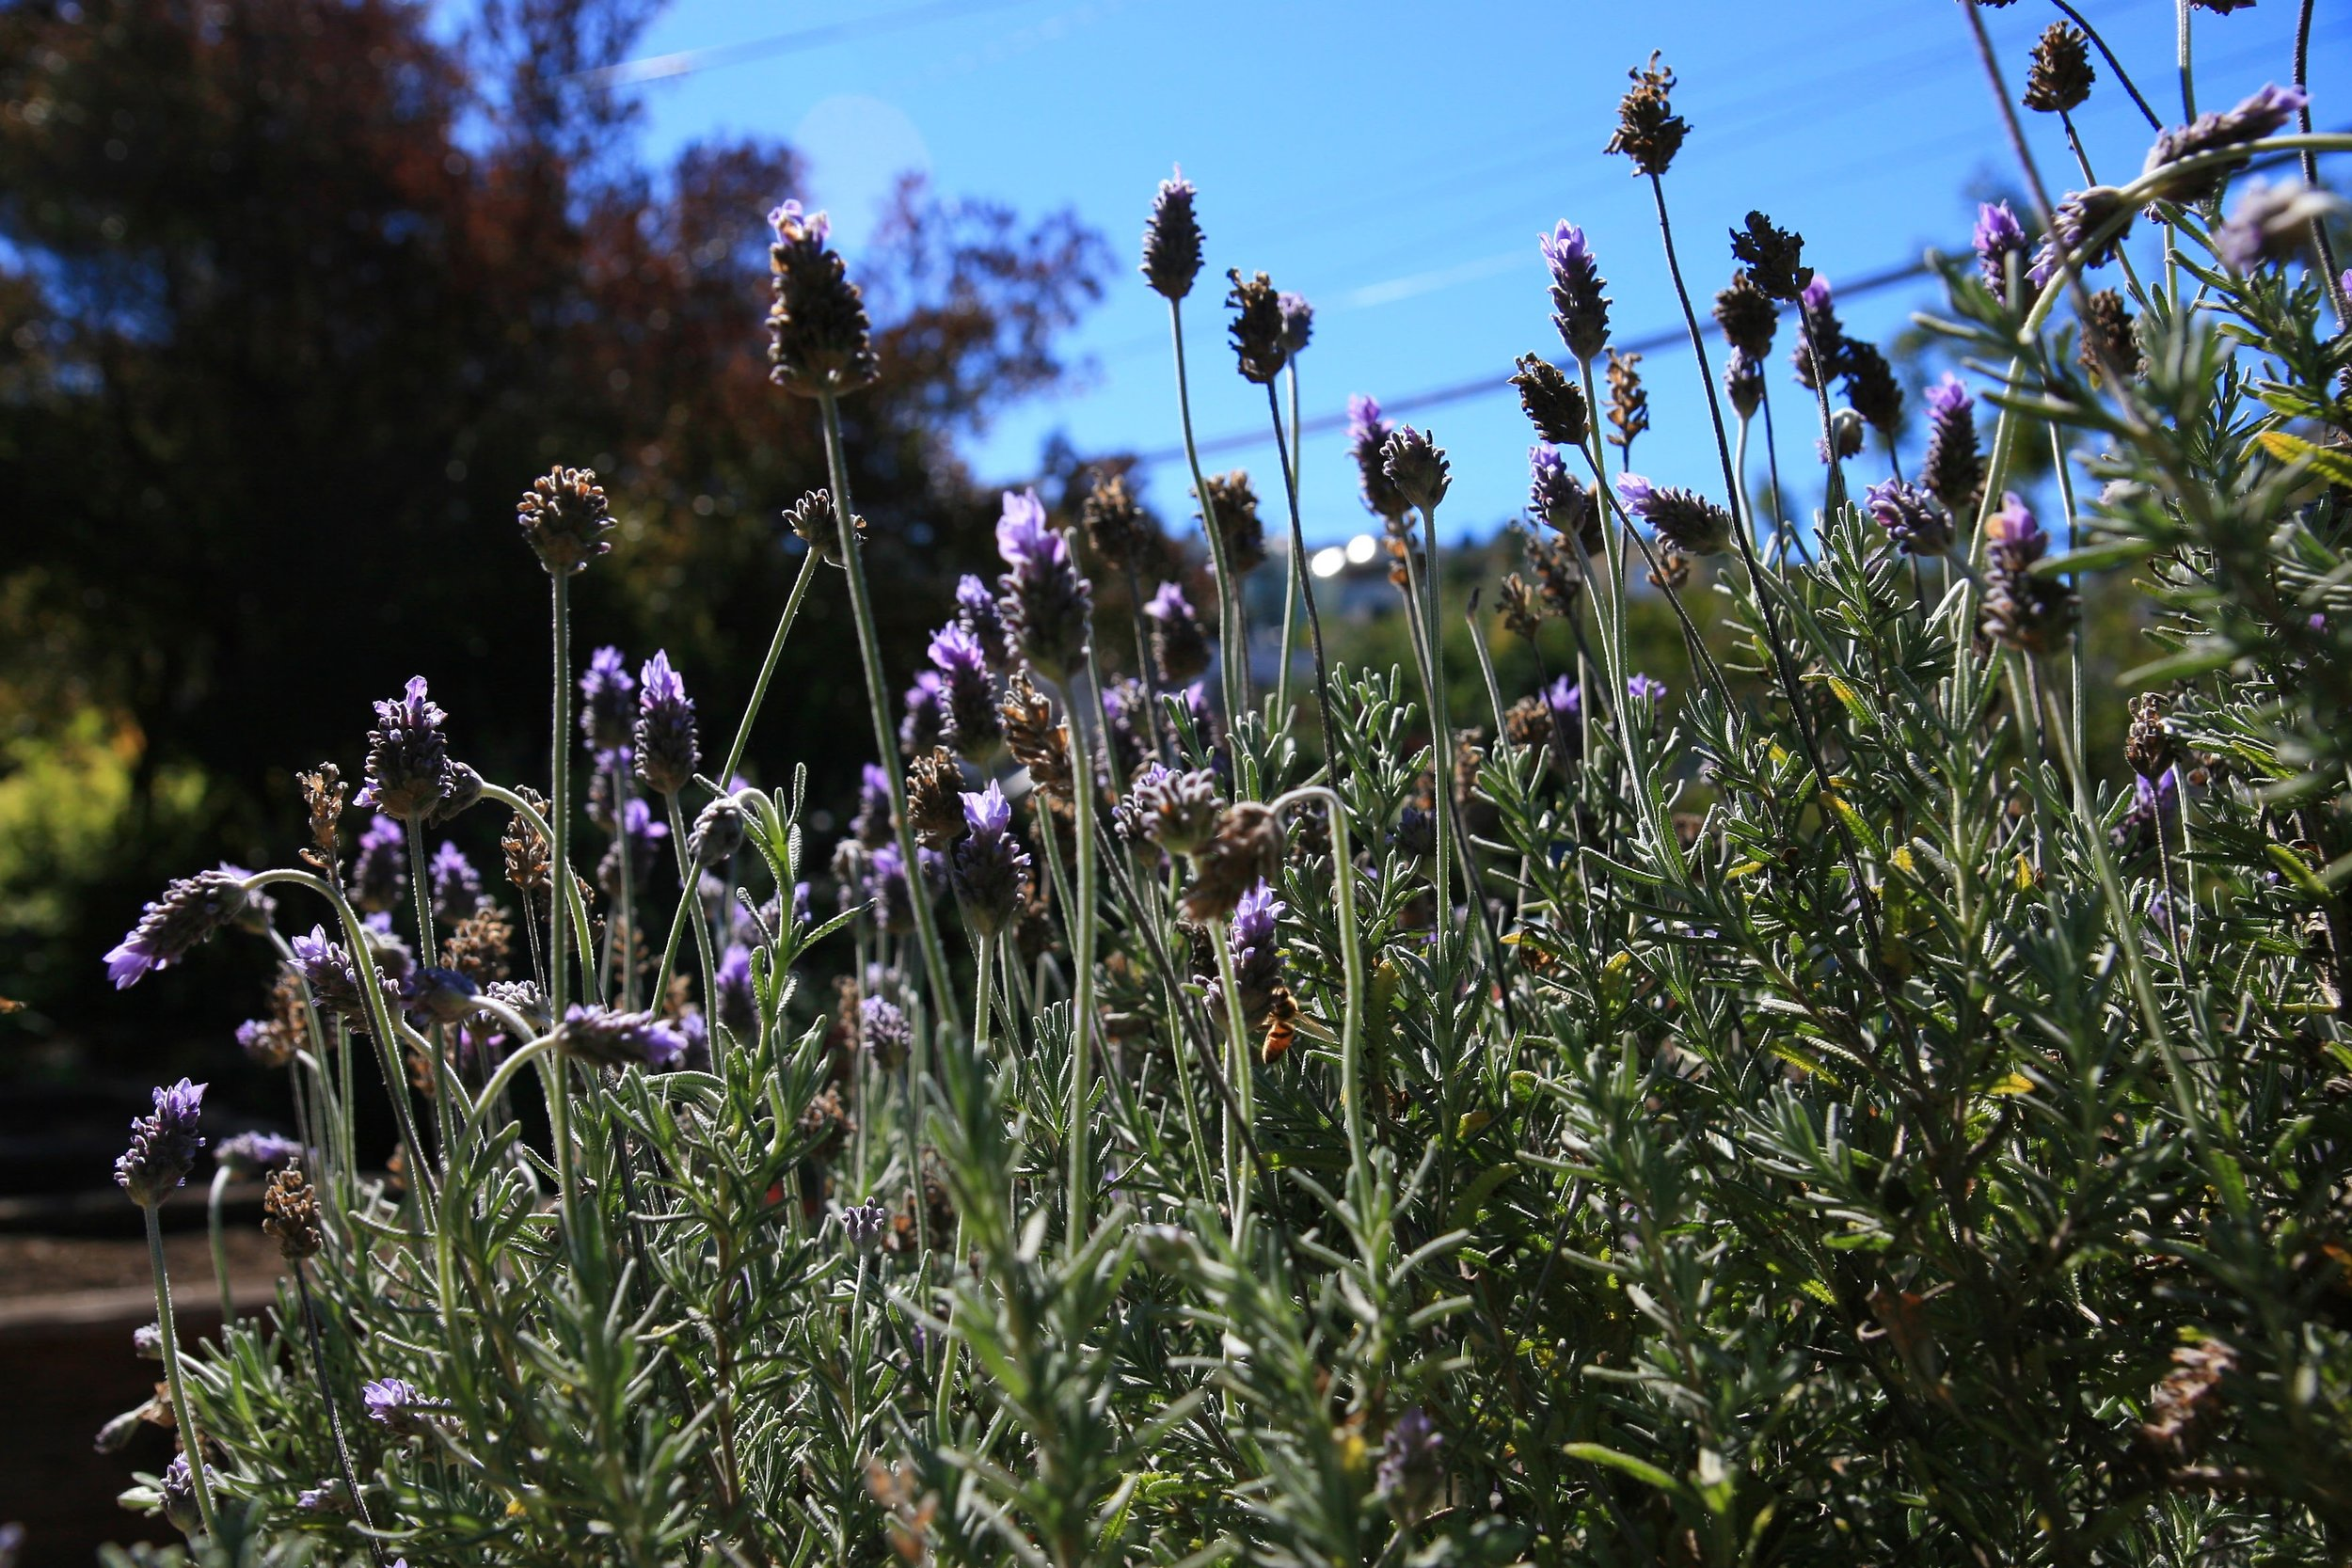 French lavender in bloom.